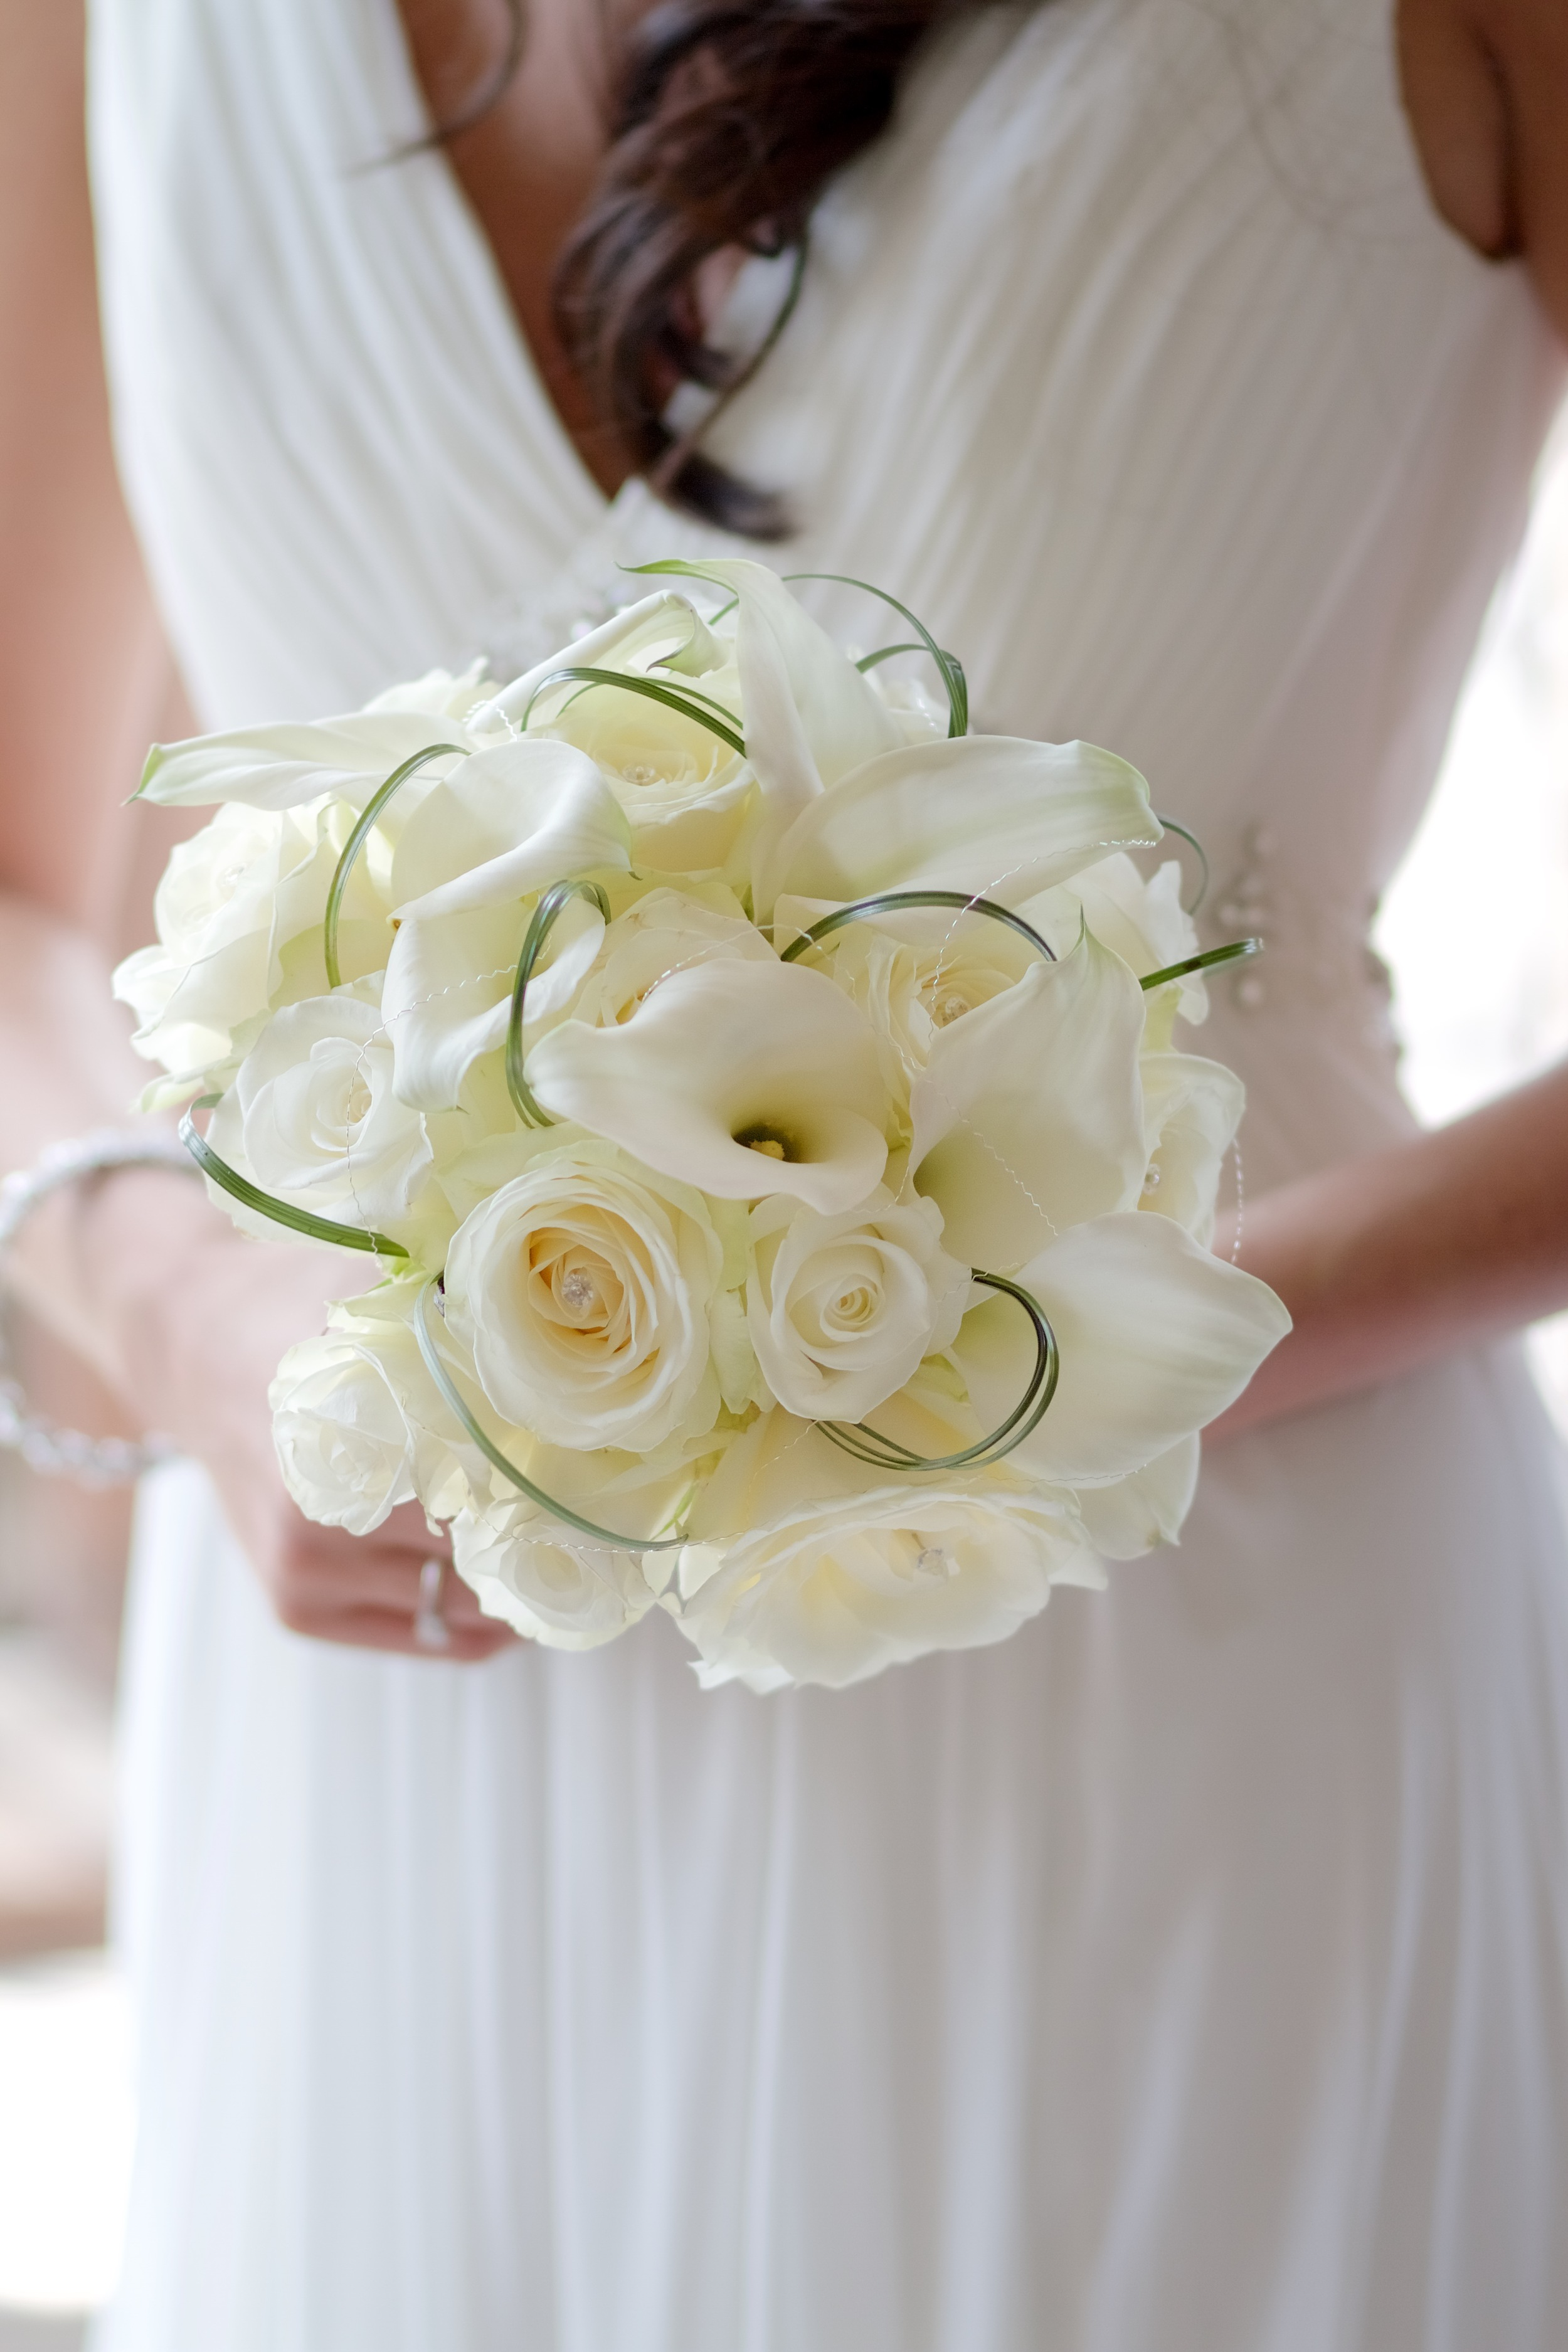 The Bride's Bouquet. ©  Wedding Photography by Vivid Confetti